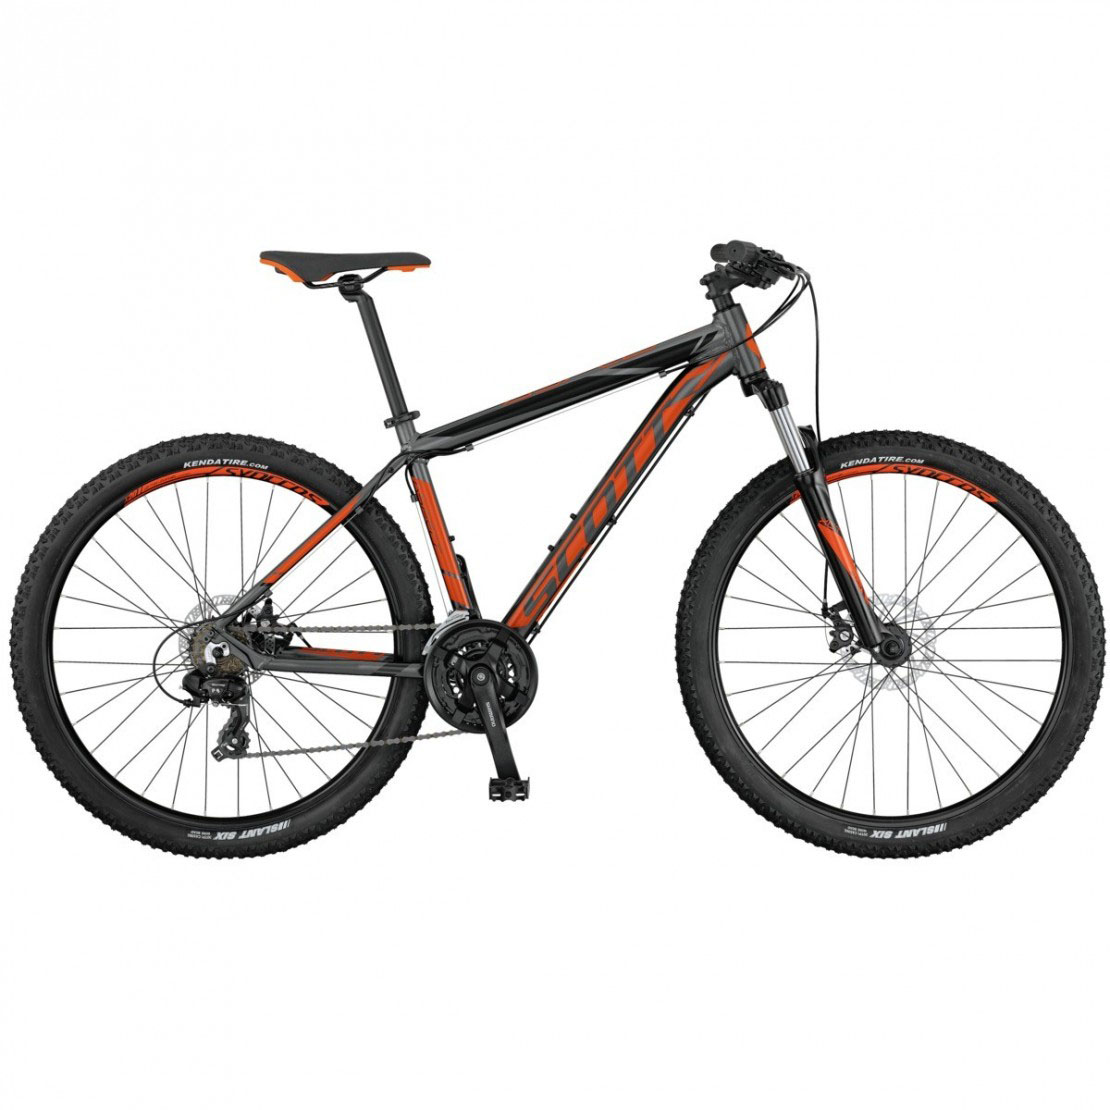 Aspect 970 2017 - 29er Mountain Bike